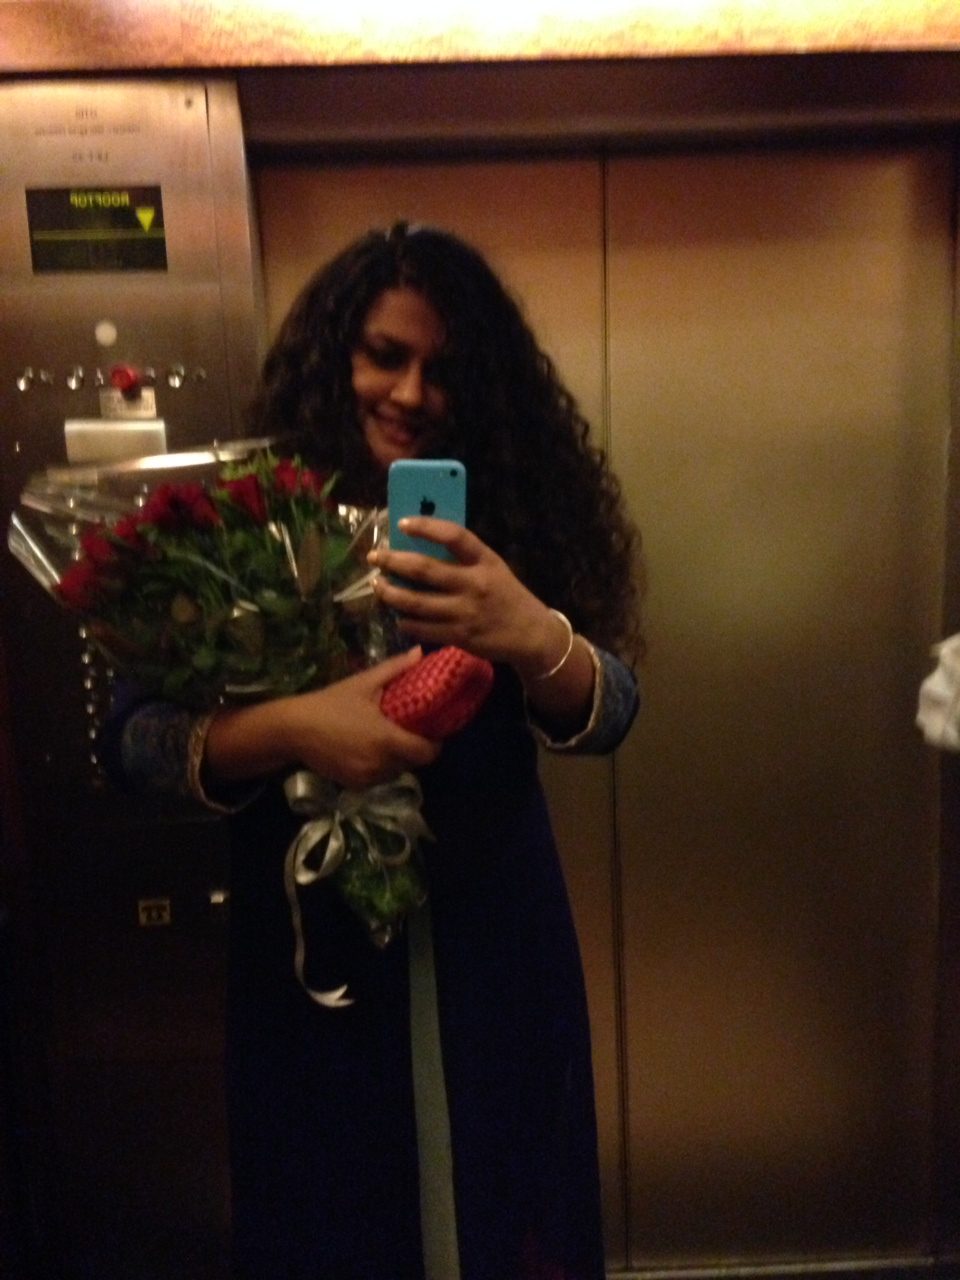 The last surprise of the evening was a bouquet of roses and a chocolate box with Middle Eastern delights. :-)